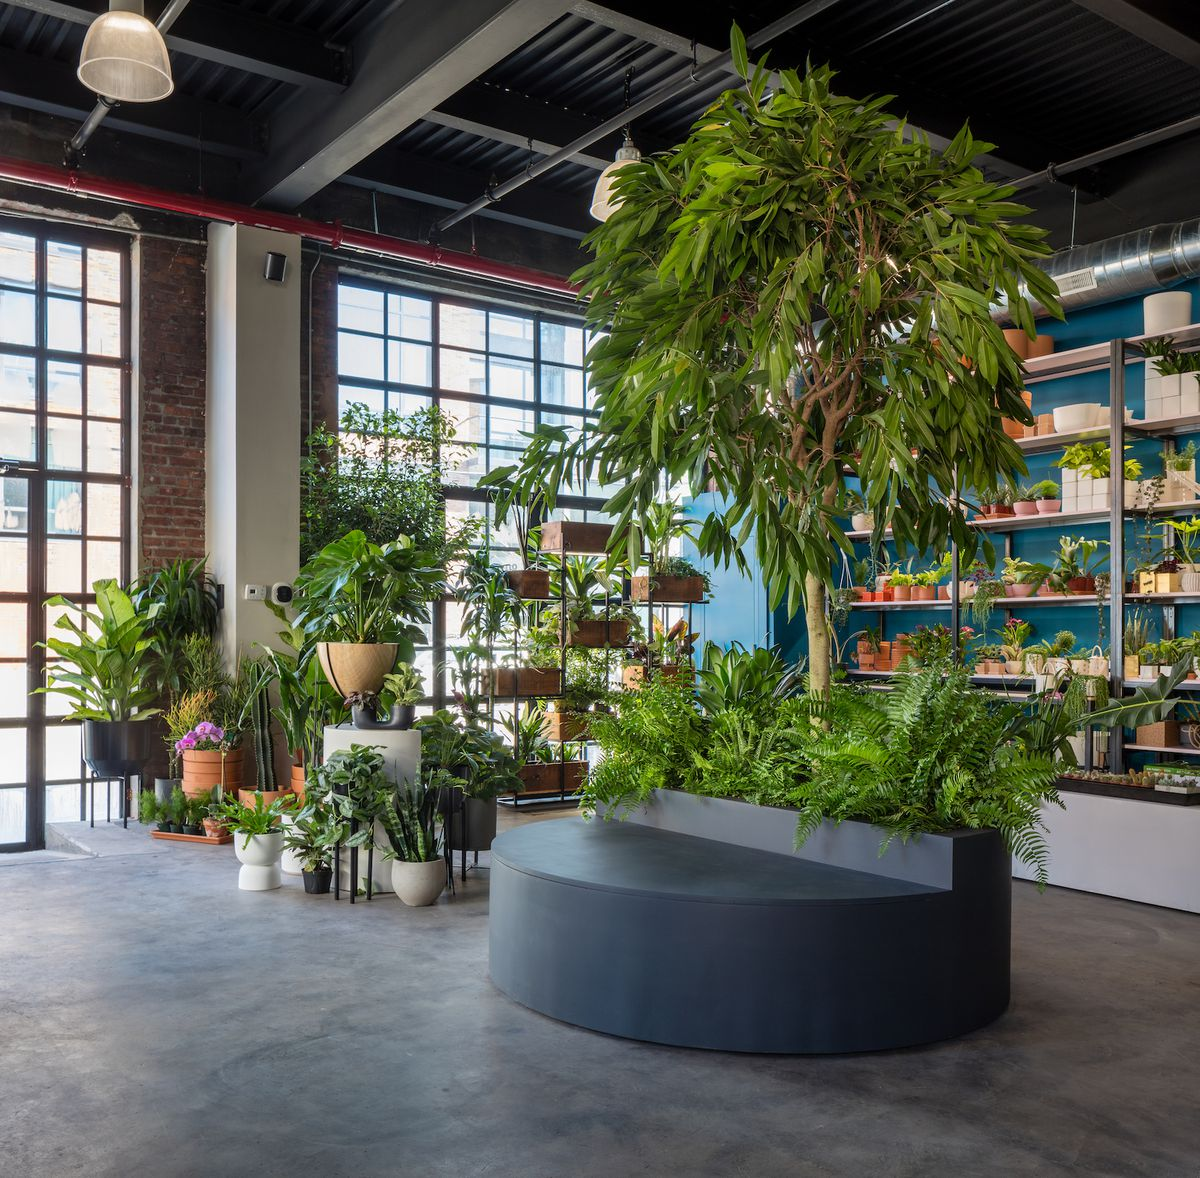 Store with lots of plants